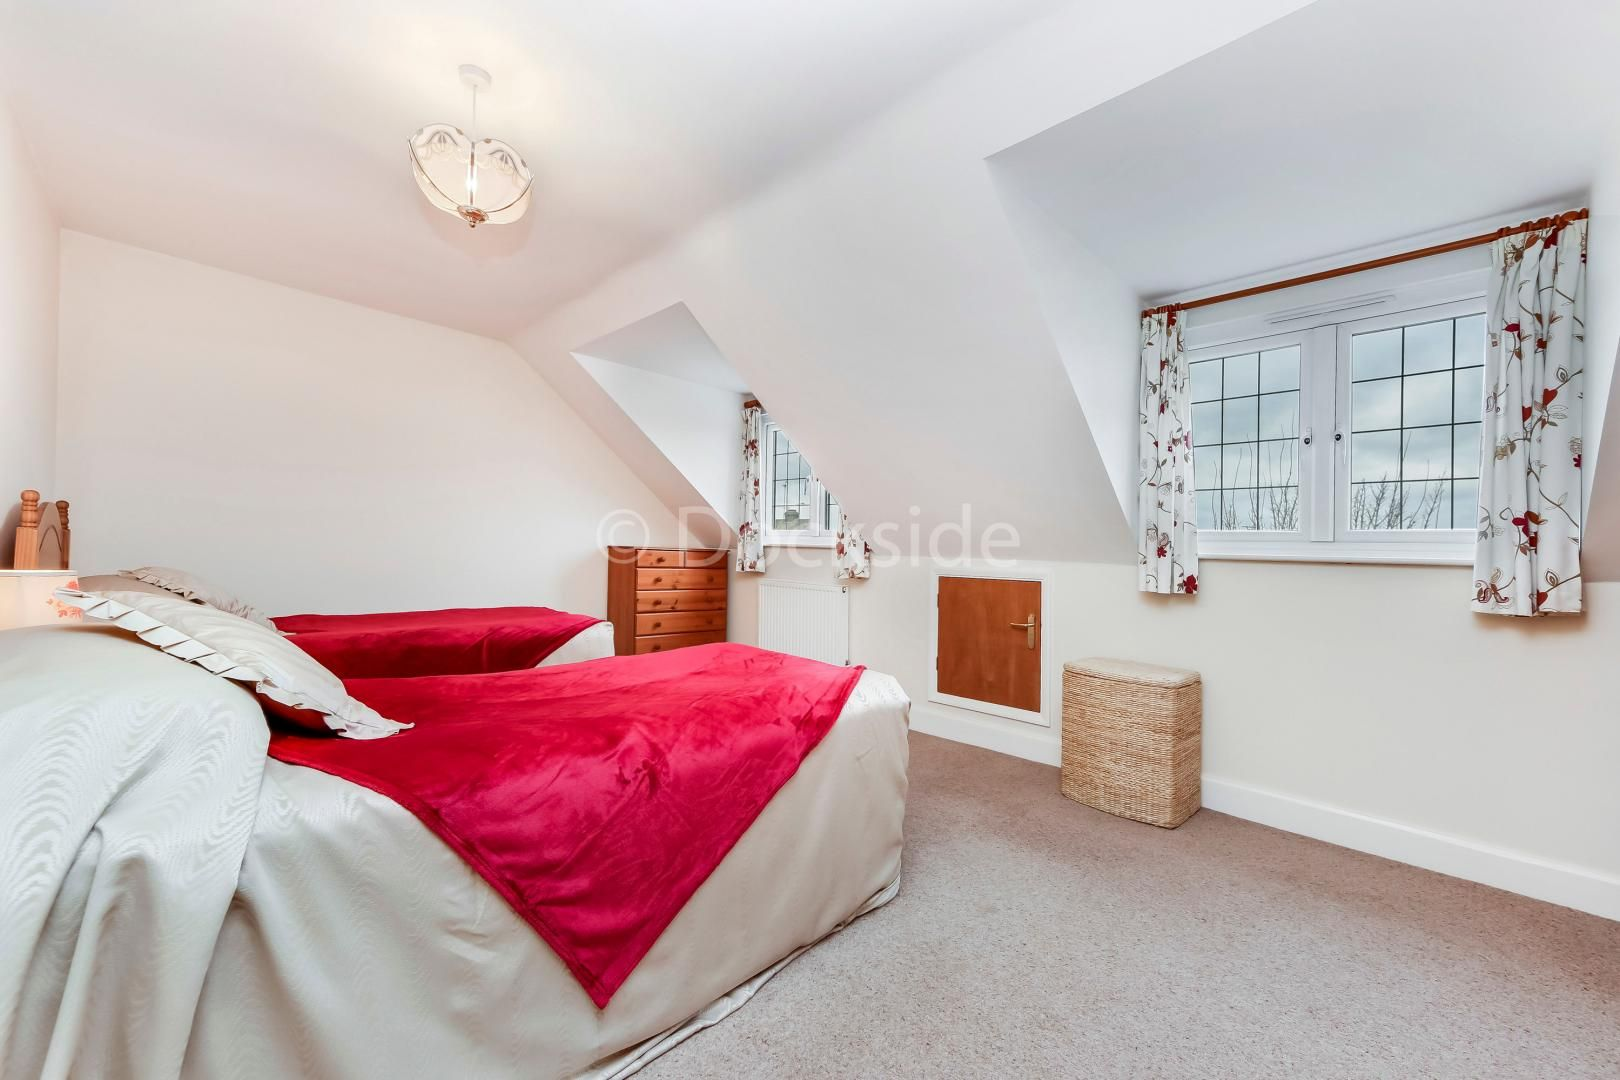 4 bed house for sale in Brompton Farm Road  - Property Image 4